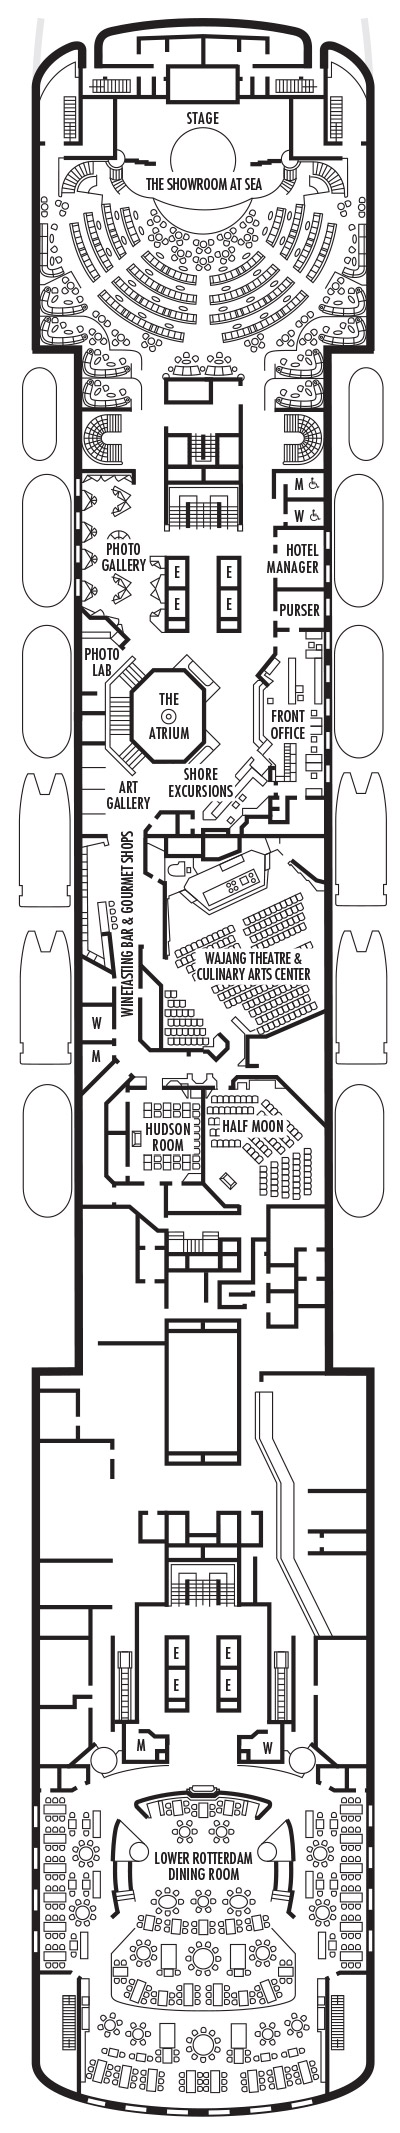 Ms veendam holland america veendam holland america line veendam ms veendam deck plans baanklon Gallery